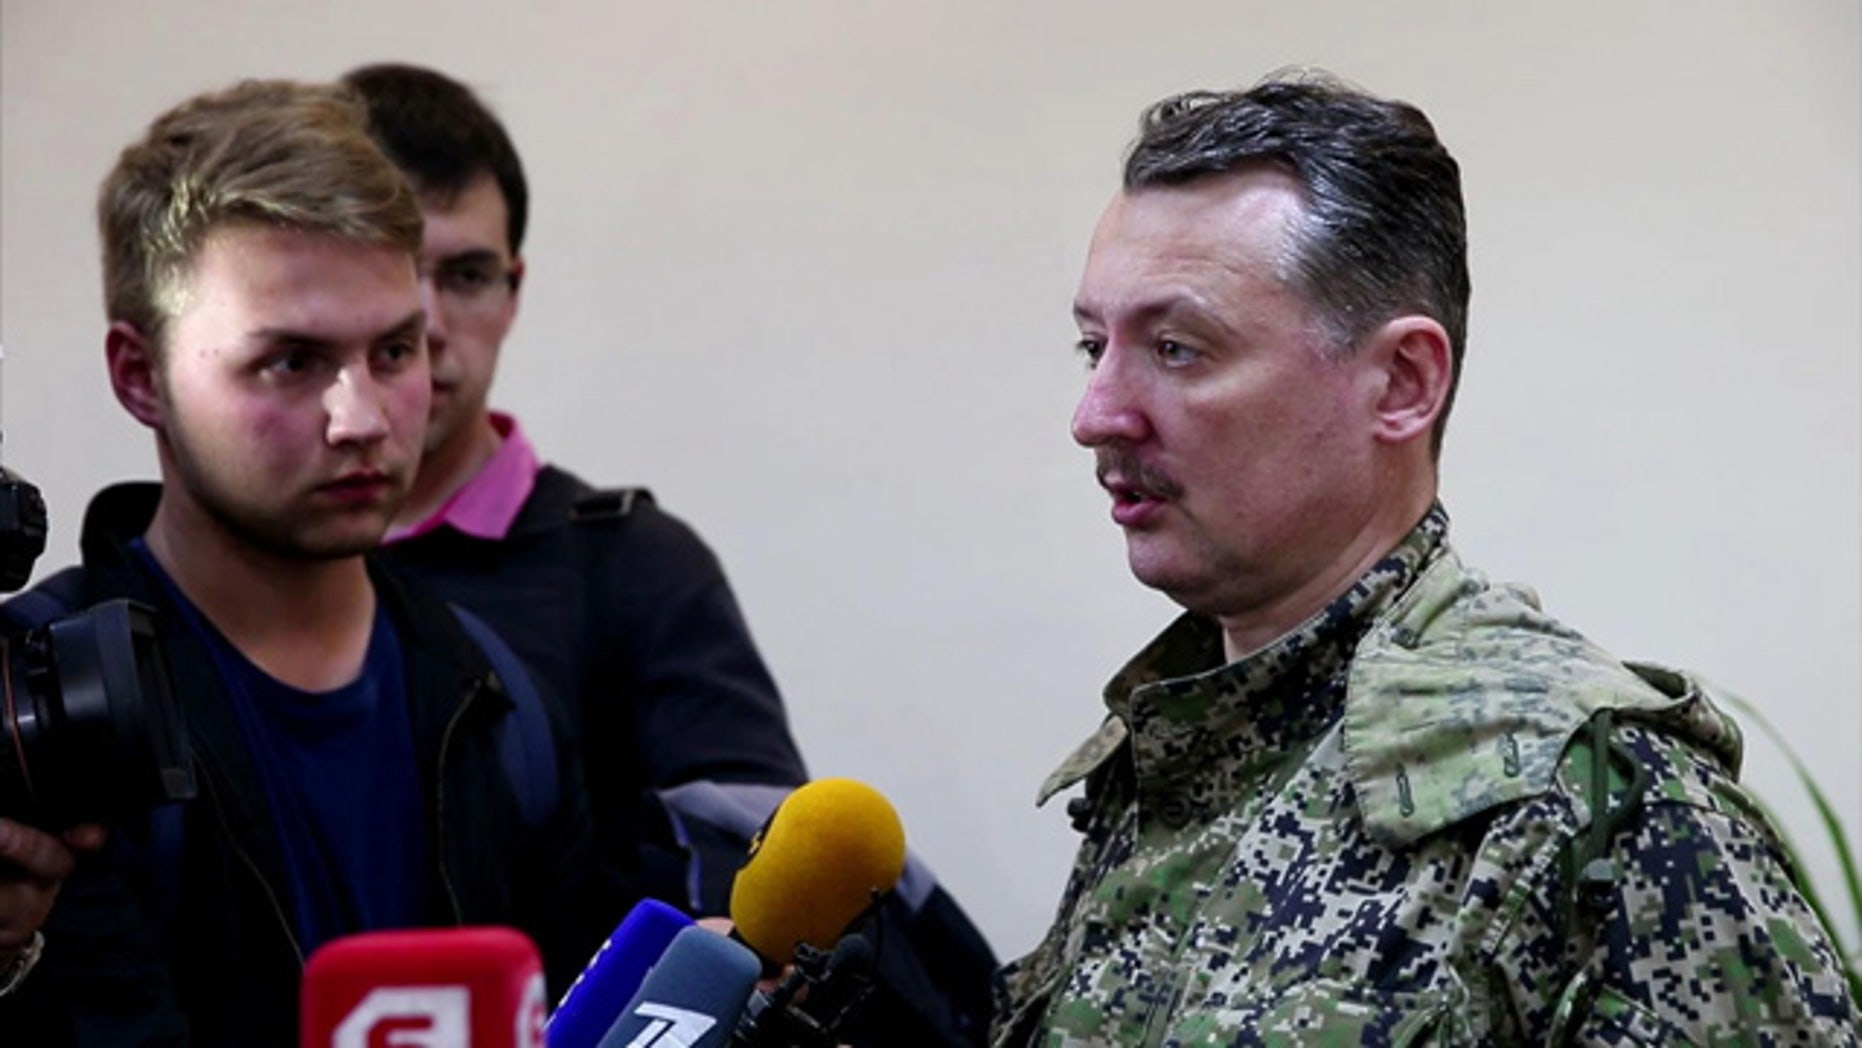 April 27, 2014: This image taken from Associated Press video shows Igor Strelkov, military commander of pro-Russian militias in Slovyansk, talking to journalists in Ukraine.